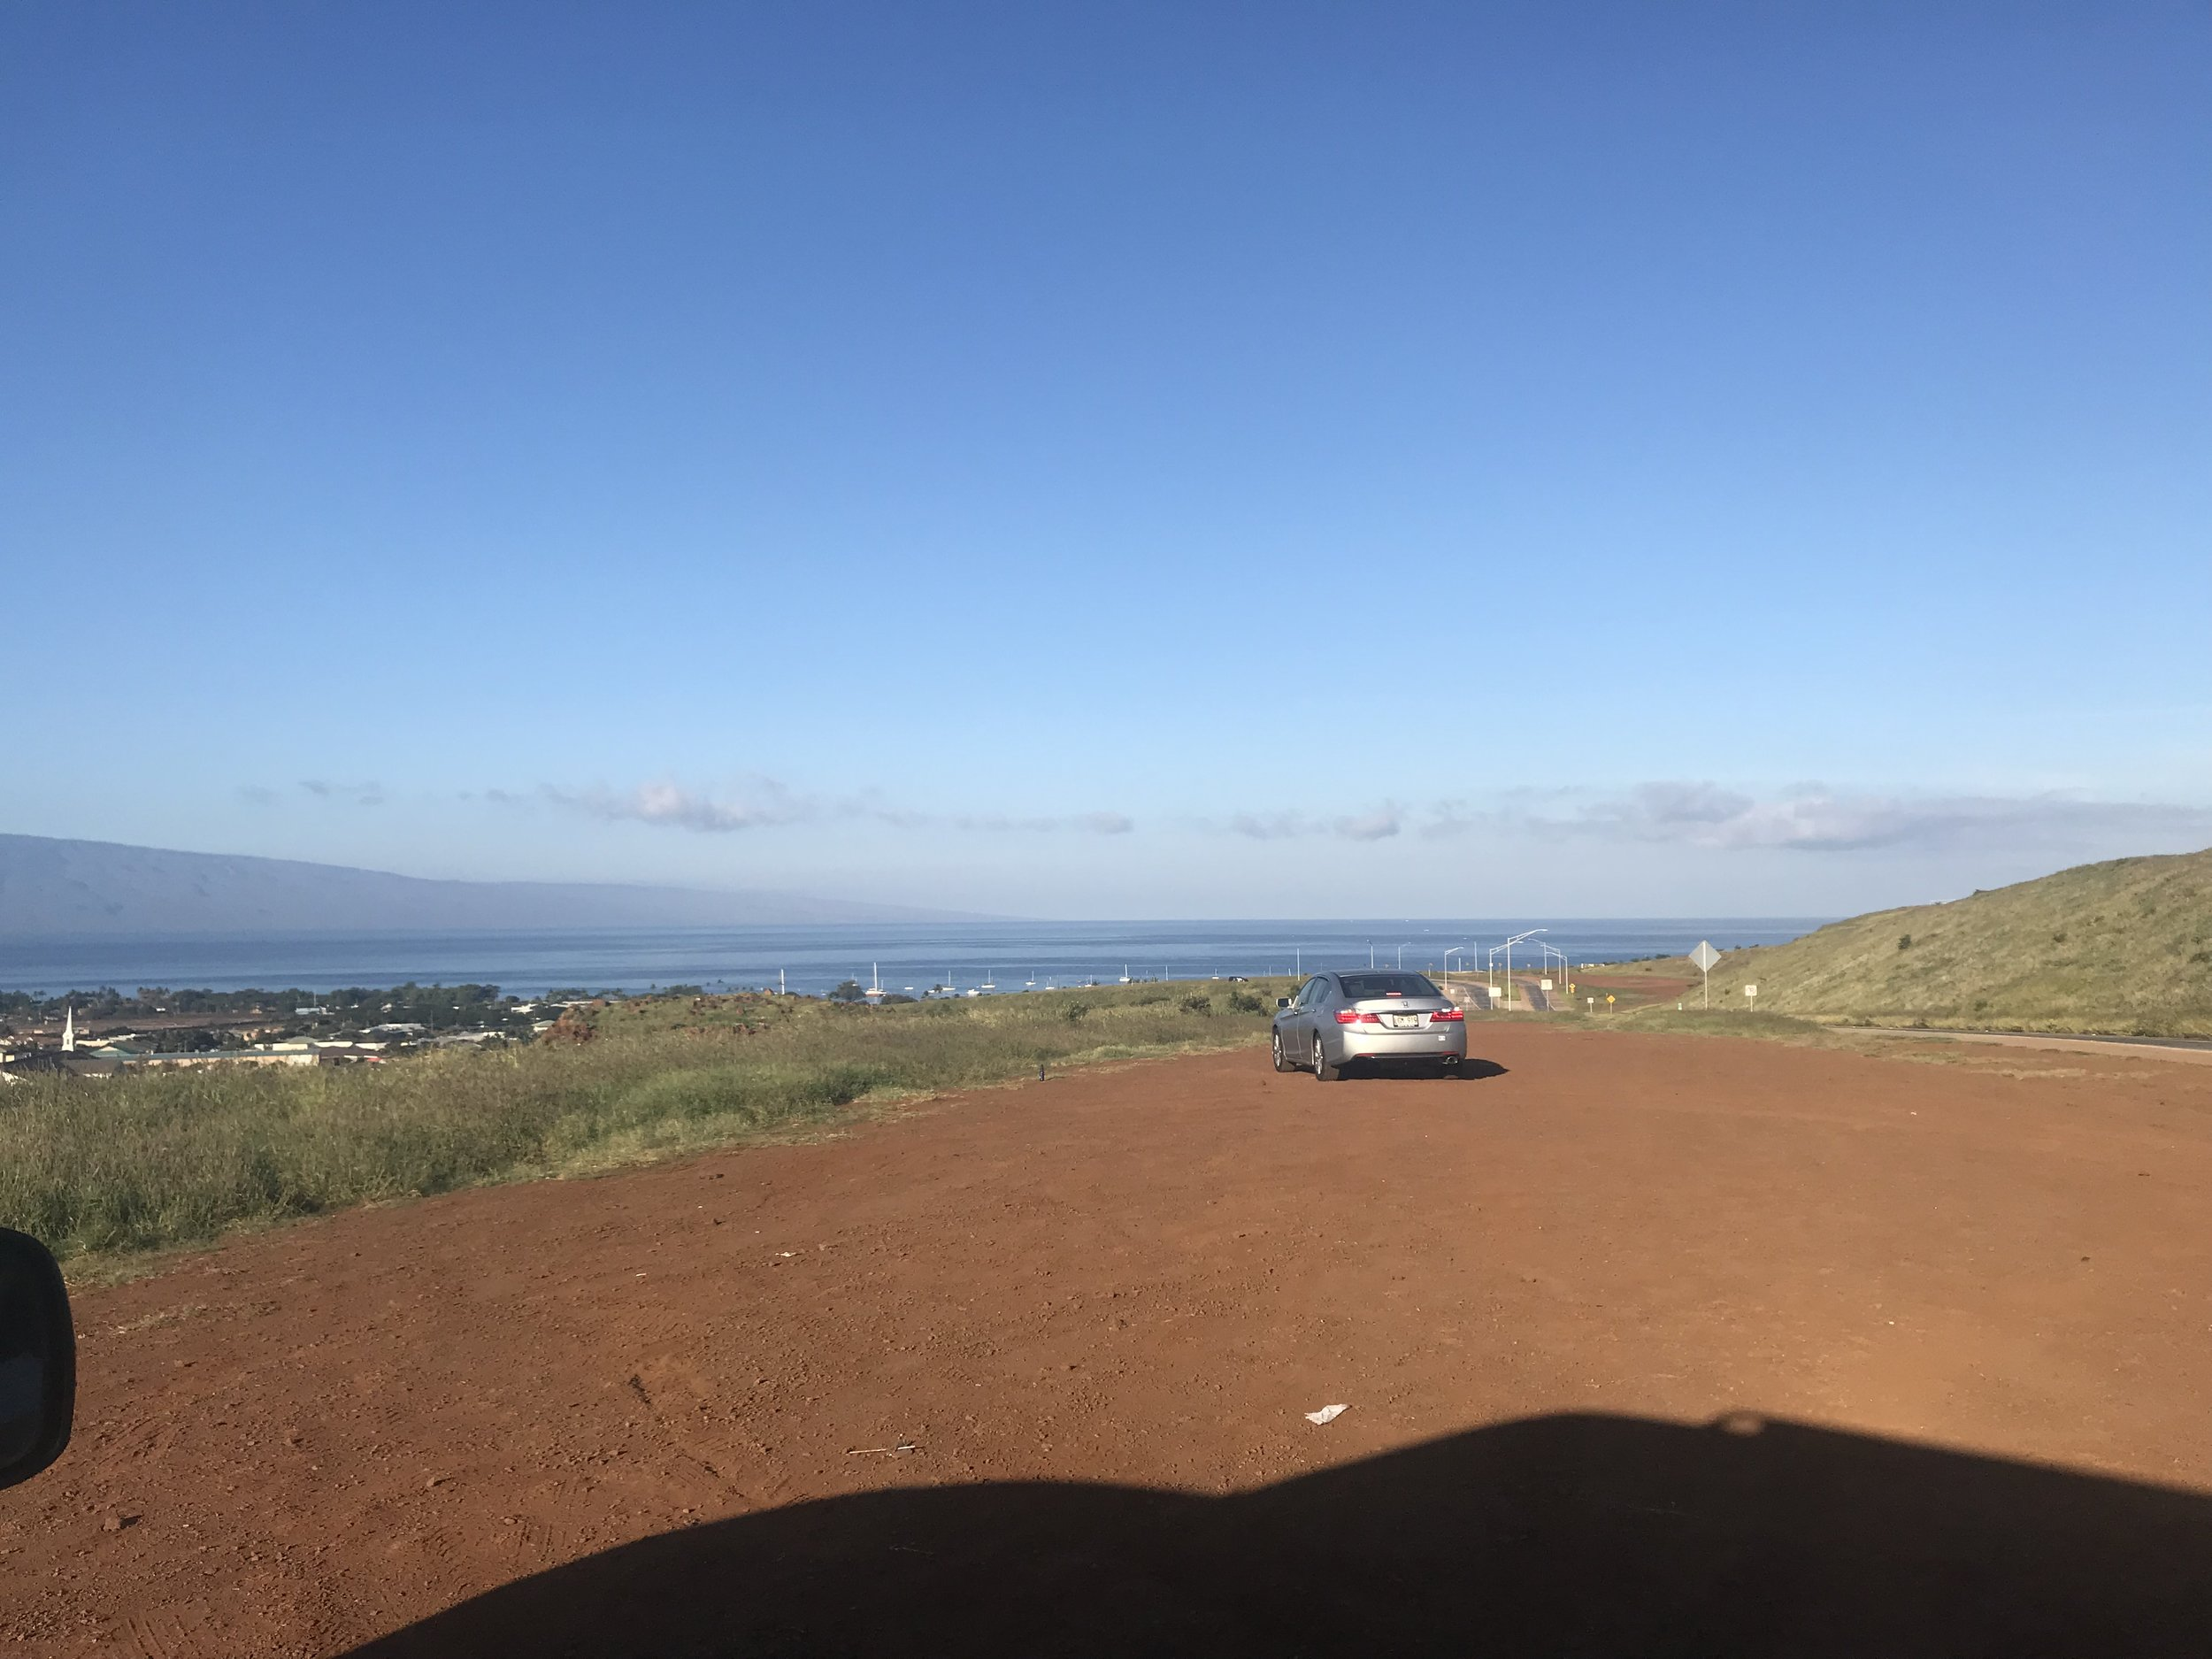 The Lahaina Bypass--safe enough from a tsunami. Oahu is about 80 miles from where I stood, in the middle of the horizon.